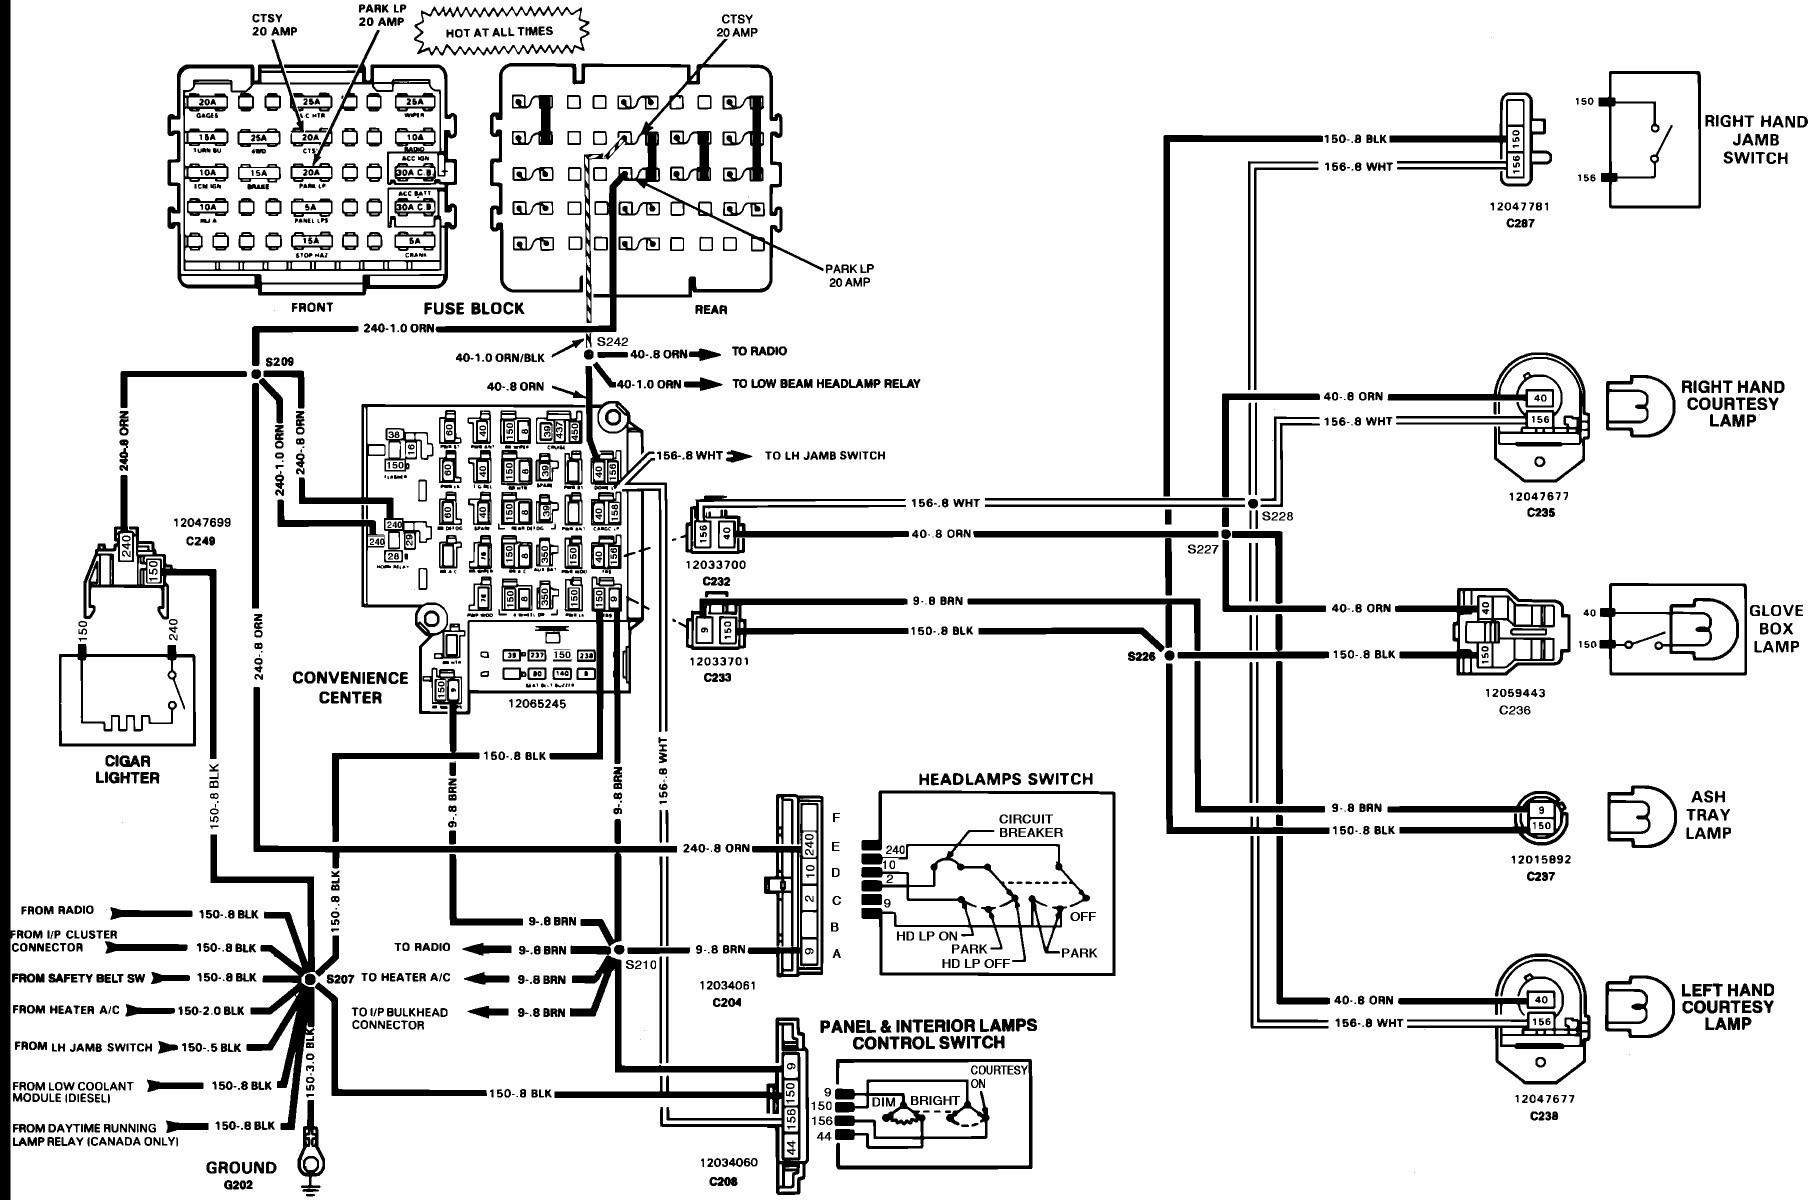 Sensational Mopar Alternator Wiring Diagram Wiring Library Wiring Digital Resources Remcakbiperorg